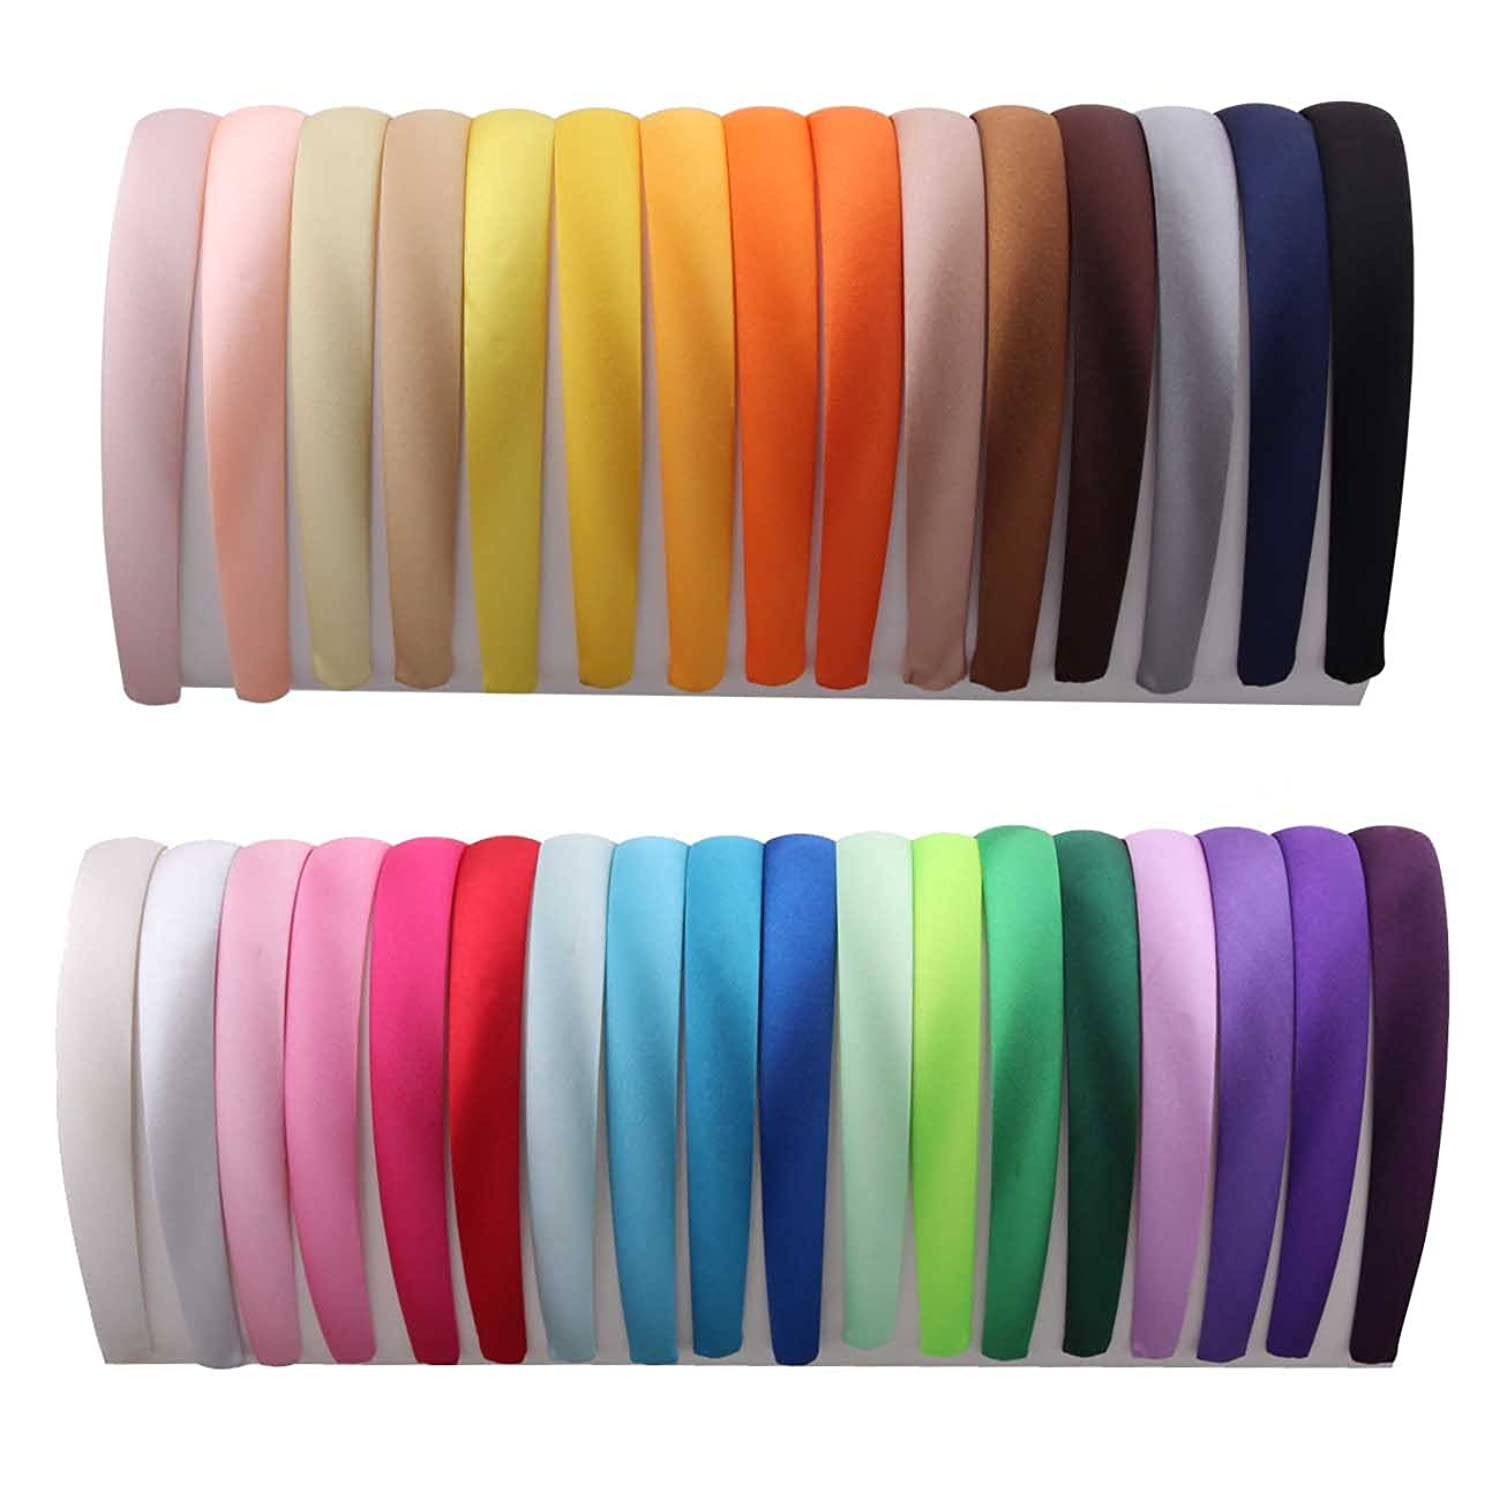 2cm Wide Satin Covered Alice Hair Band Headband( 33colors Each Color 1pcs Per Pack)